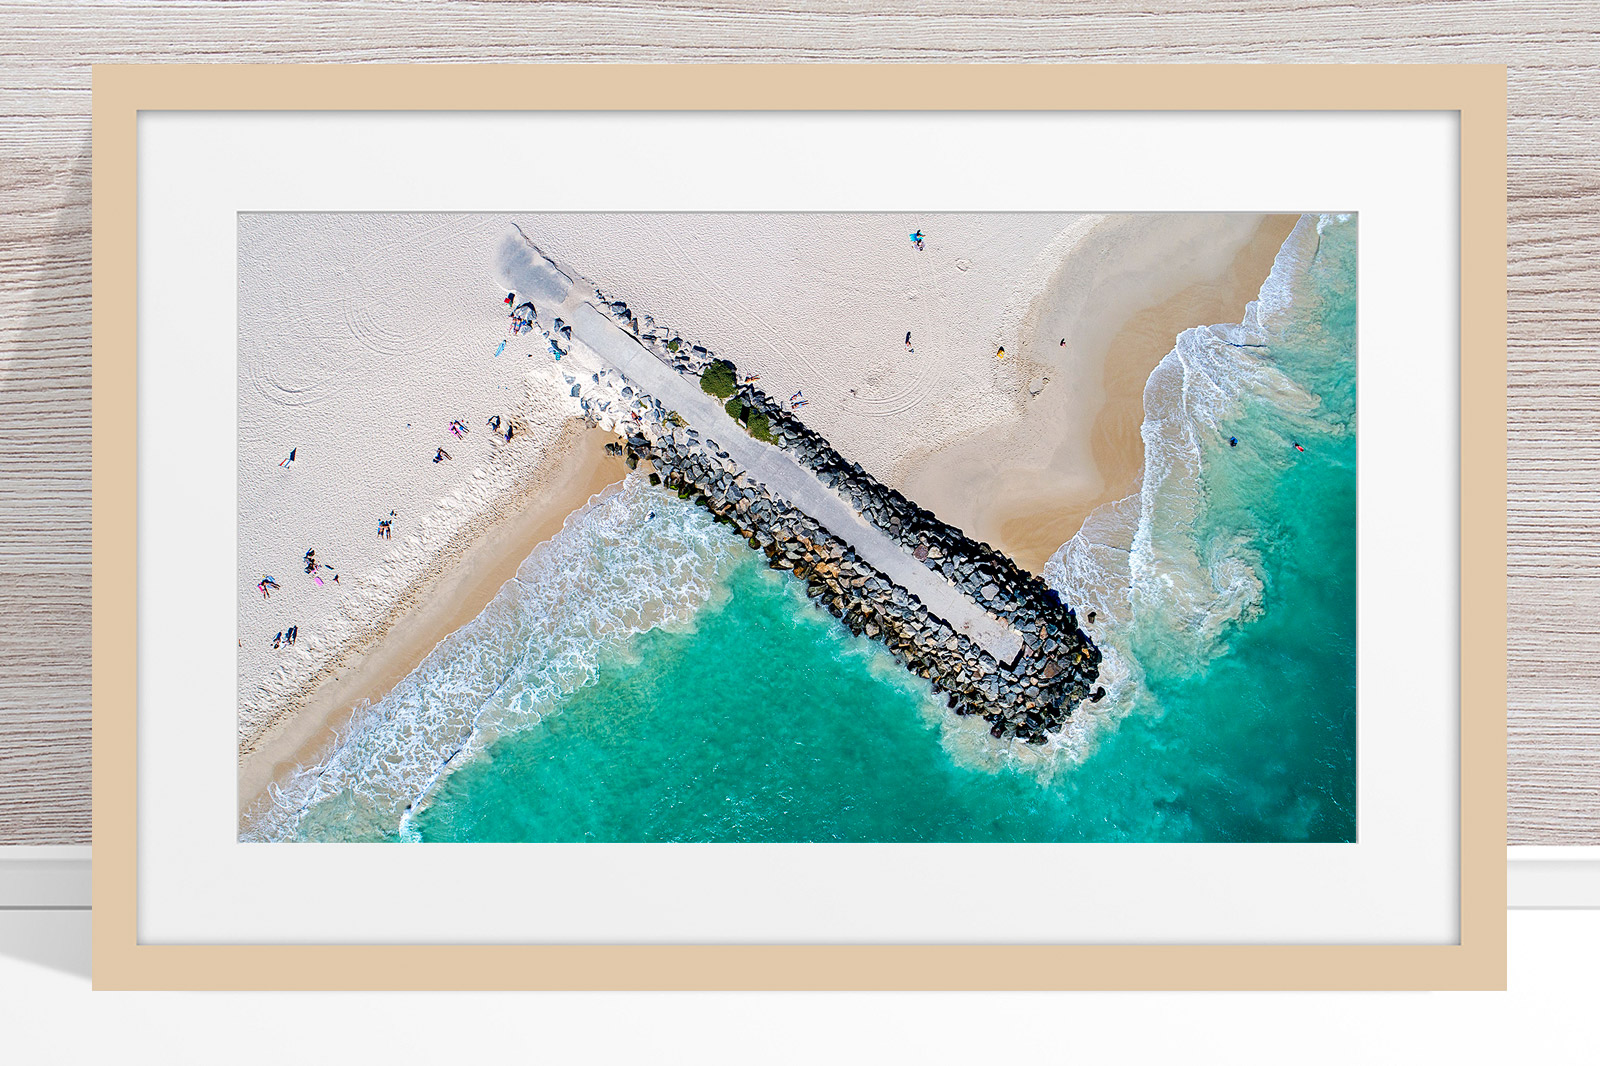 021 - Jason Mazur - 'City Beach Groyne' Light Frame